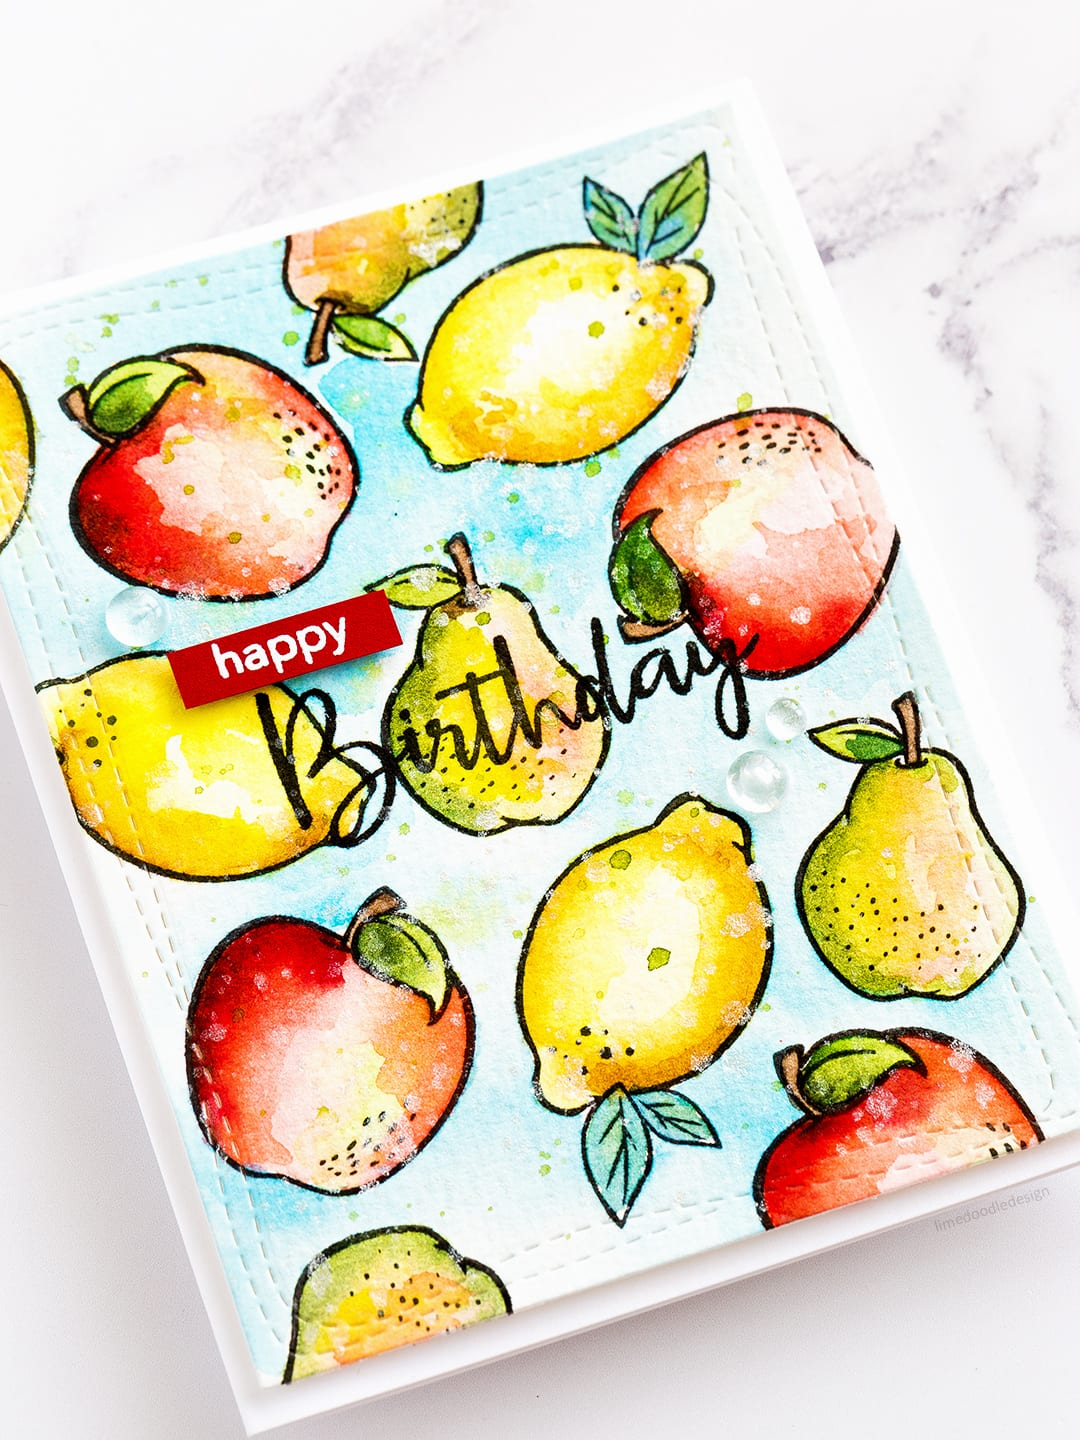 Supplies two ways with the Dancing Fruits set - part of the new release from Simon Says Stamp. Find out more about these cards by clicking on the following link: https://limedoodledesign.com/2017/06/supplies-two-ways-simon-says-stamp-new-release/